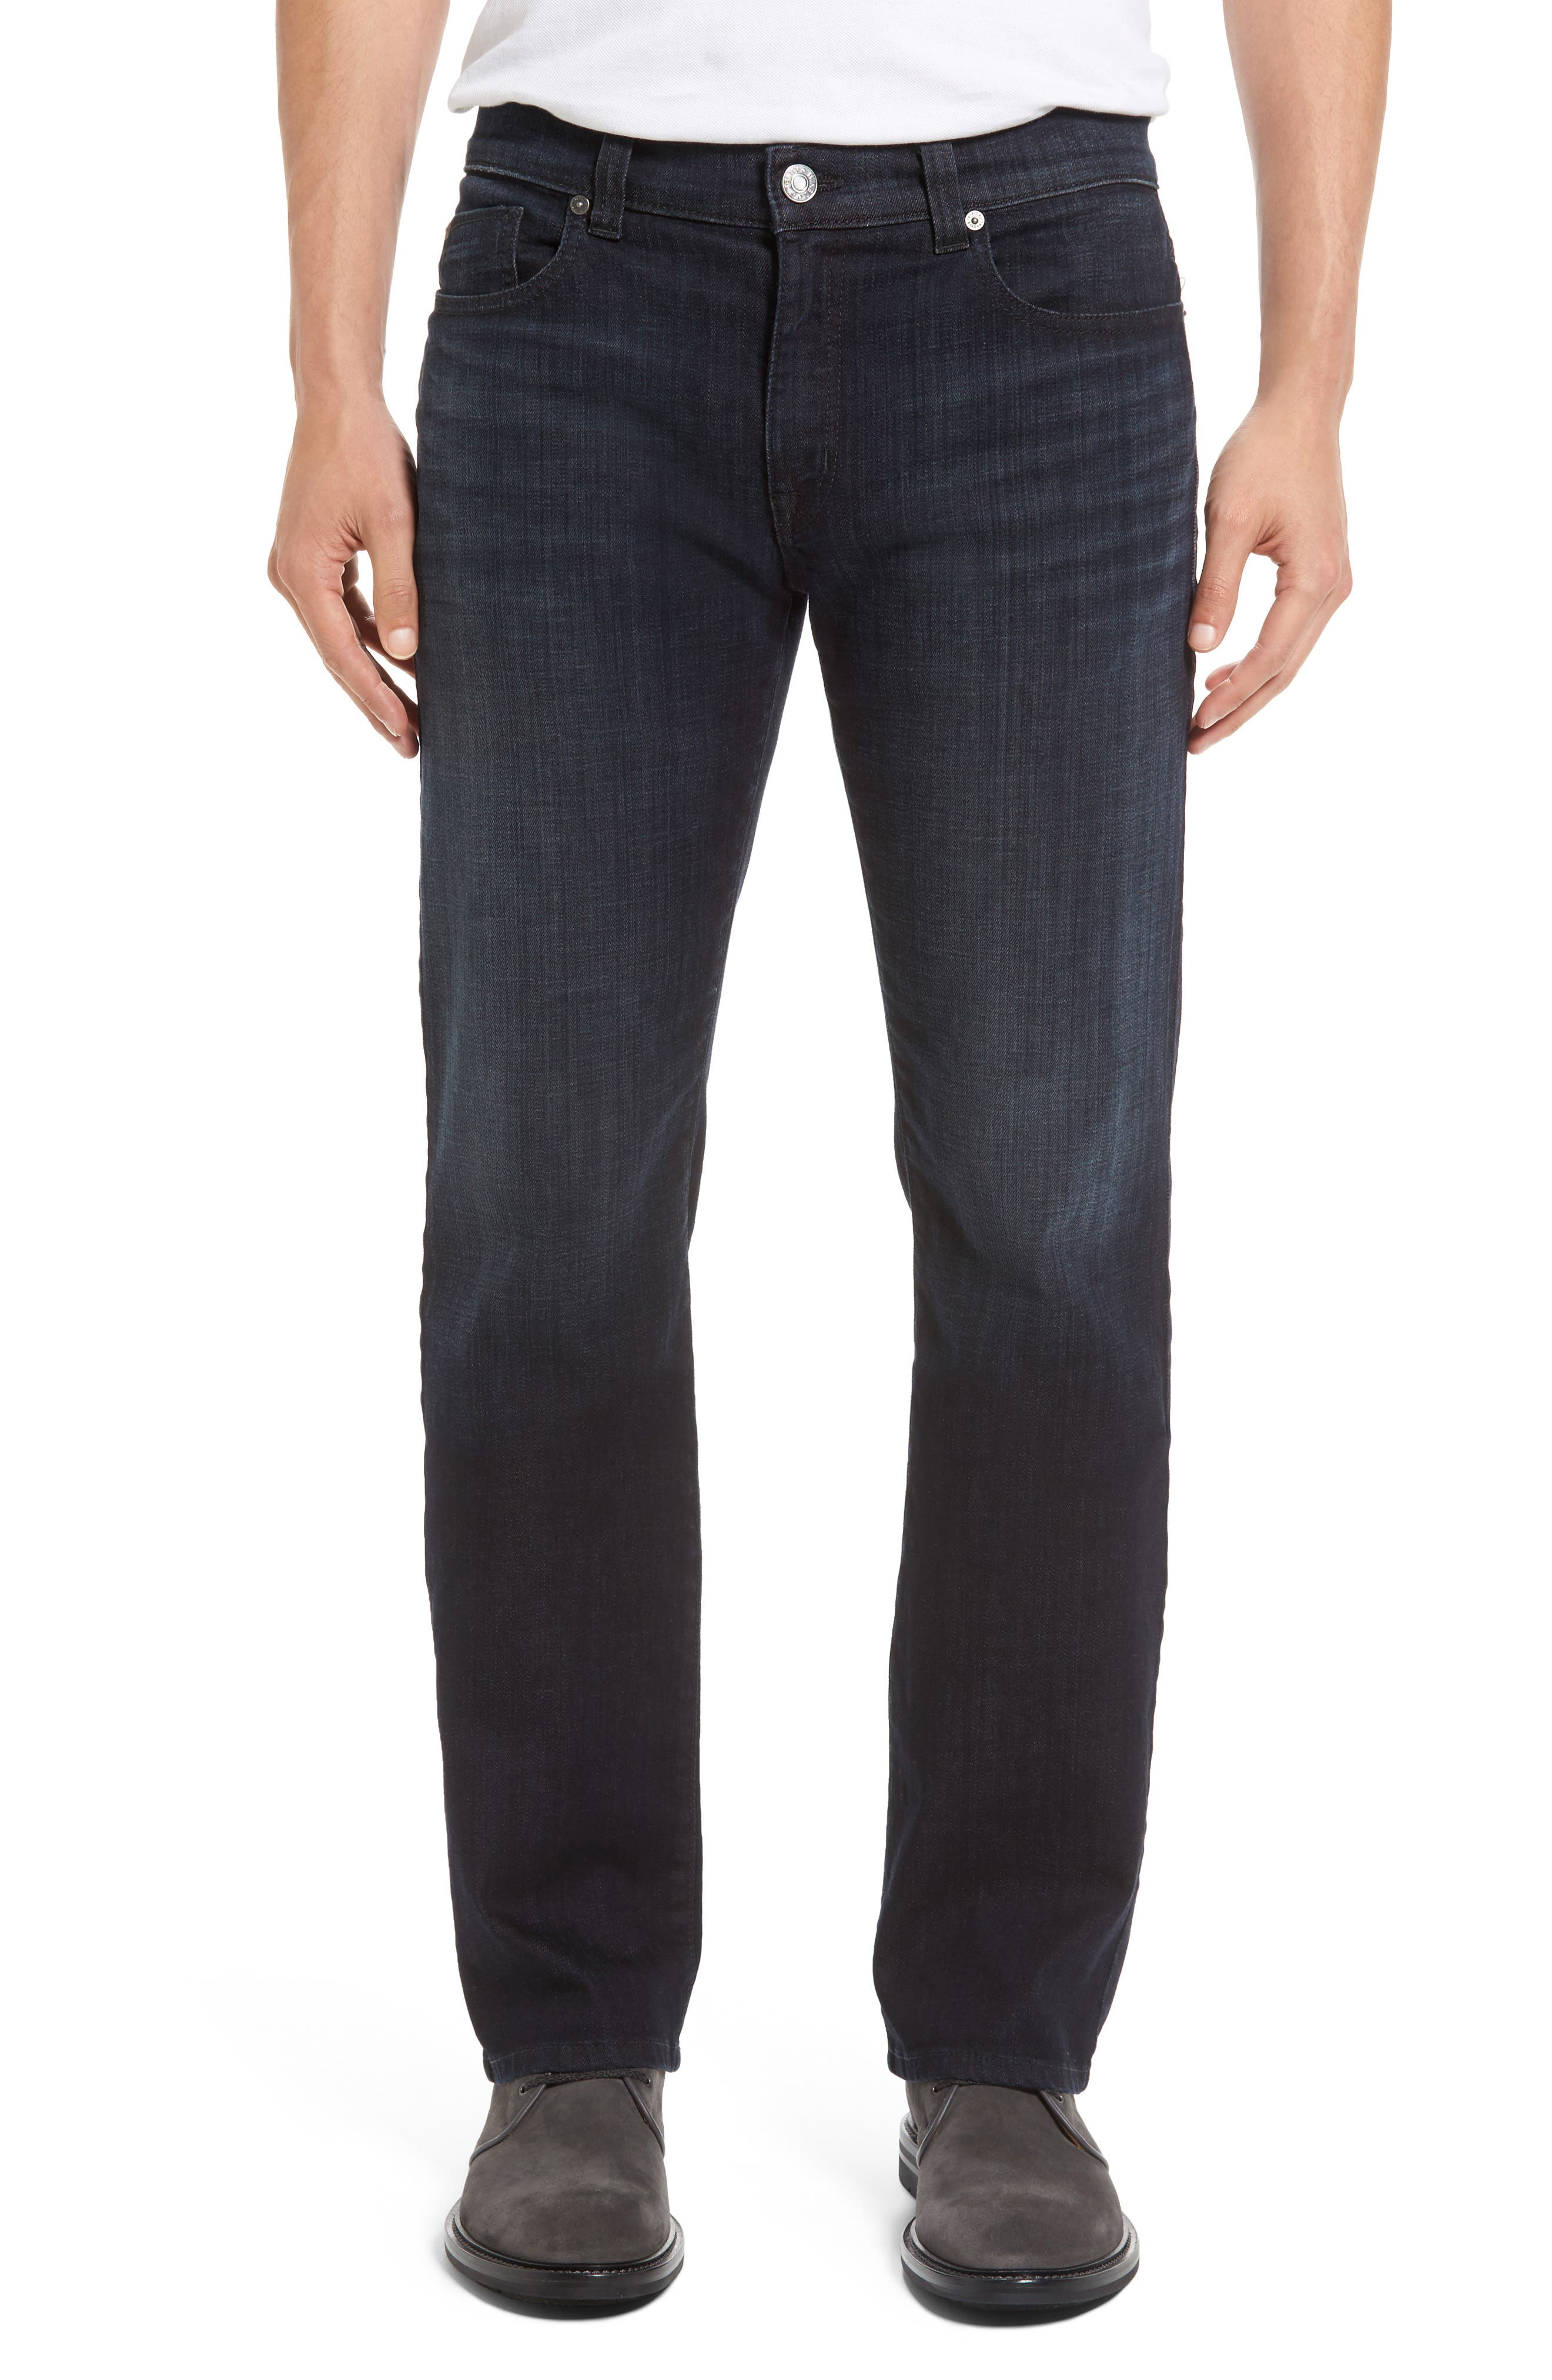 5011 Relaxed Fit Jeans,                         Main,                         color,